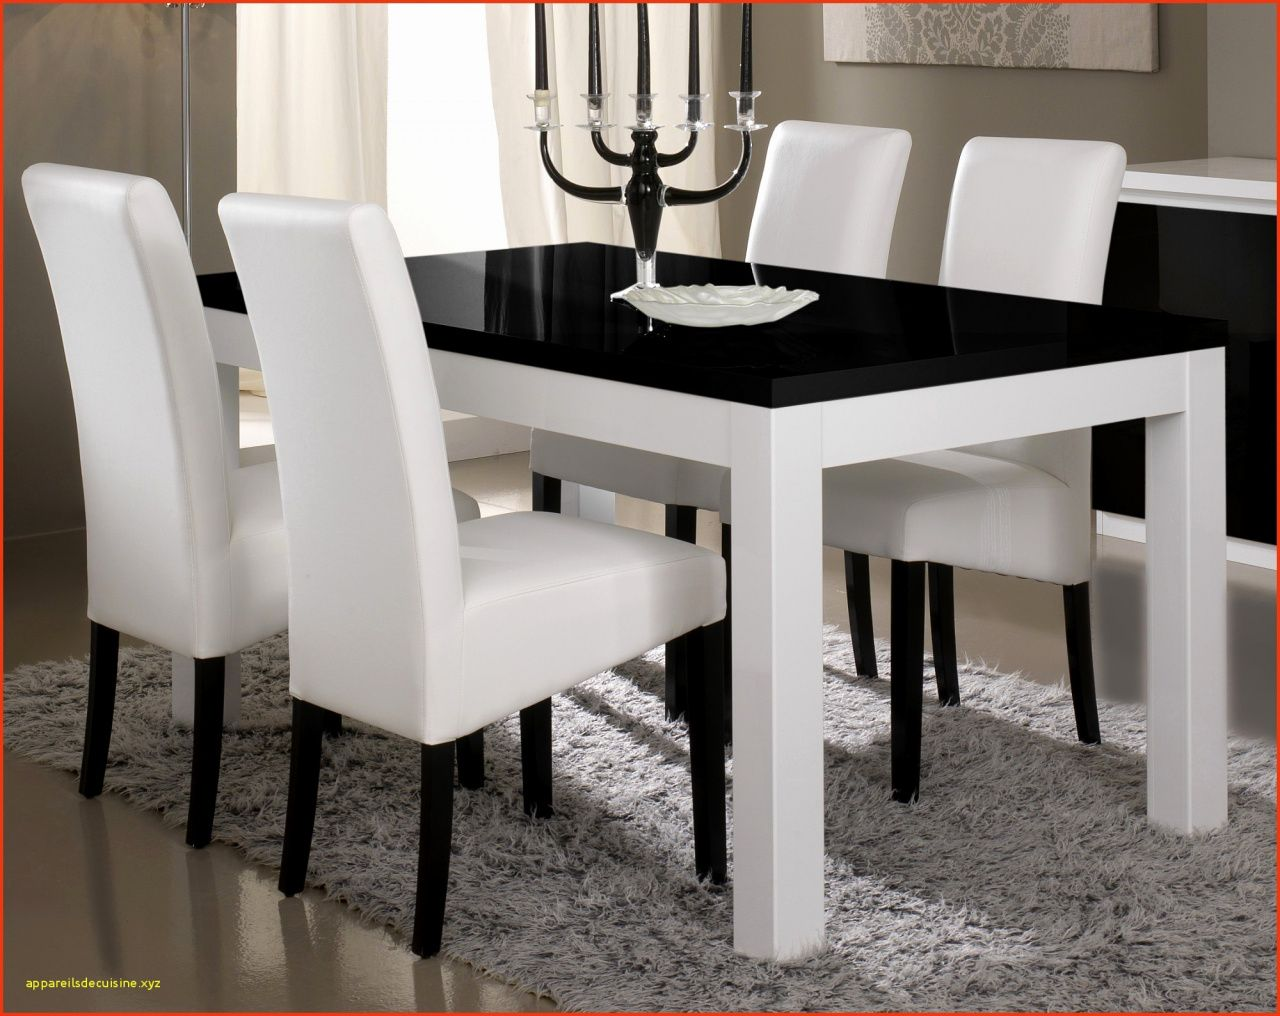 77 Chaises Salle A Manger But Table A Manger Blanche Chaise Salle A Manger Table A Manger Noire